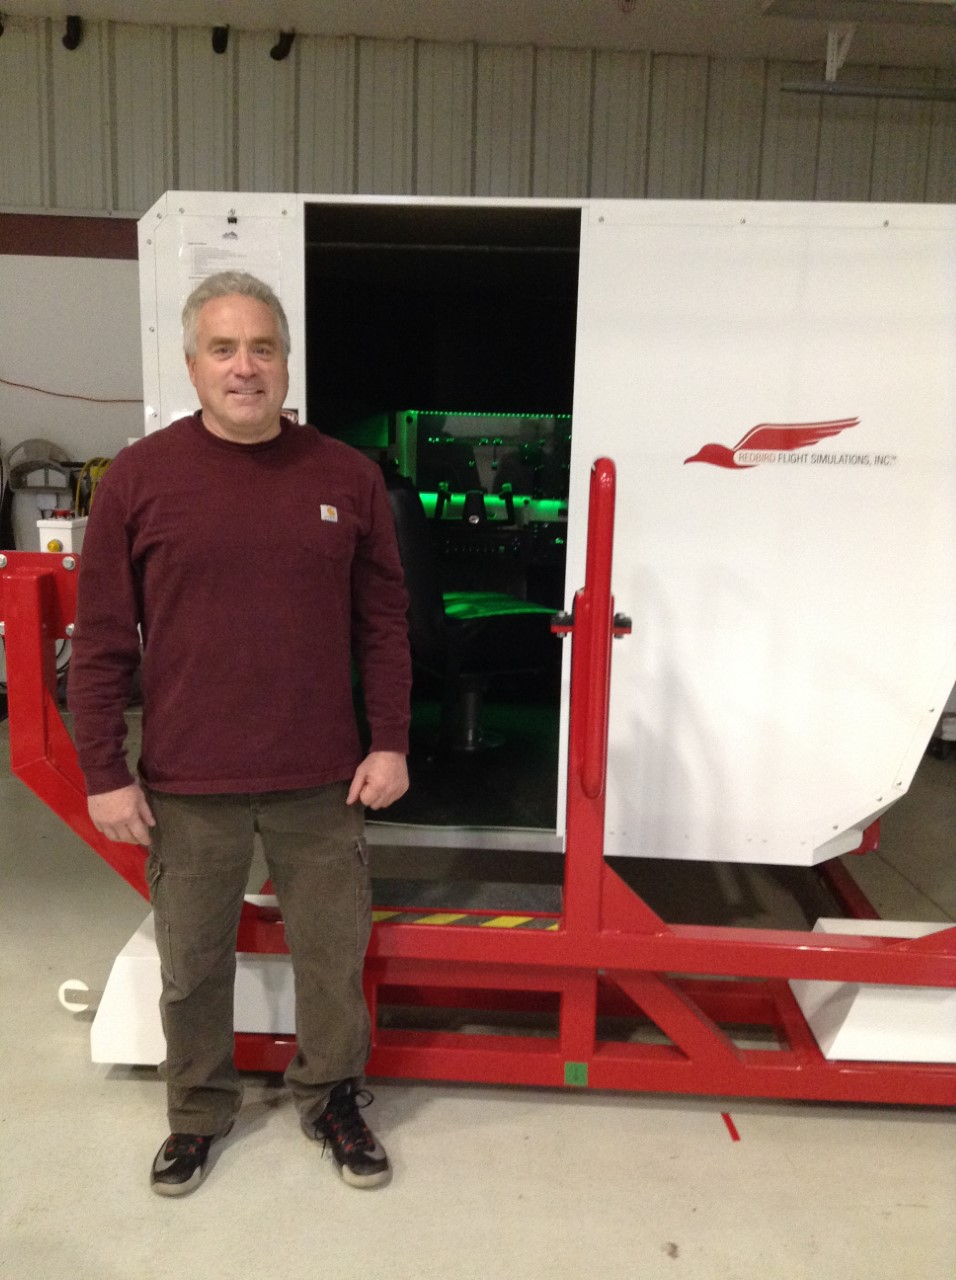 Al Merrill with his RedBird Flight Simulator that is used to teach and train rising pilots.